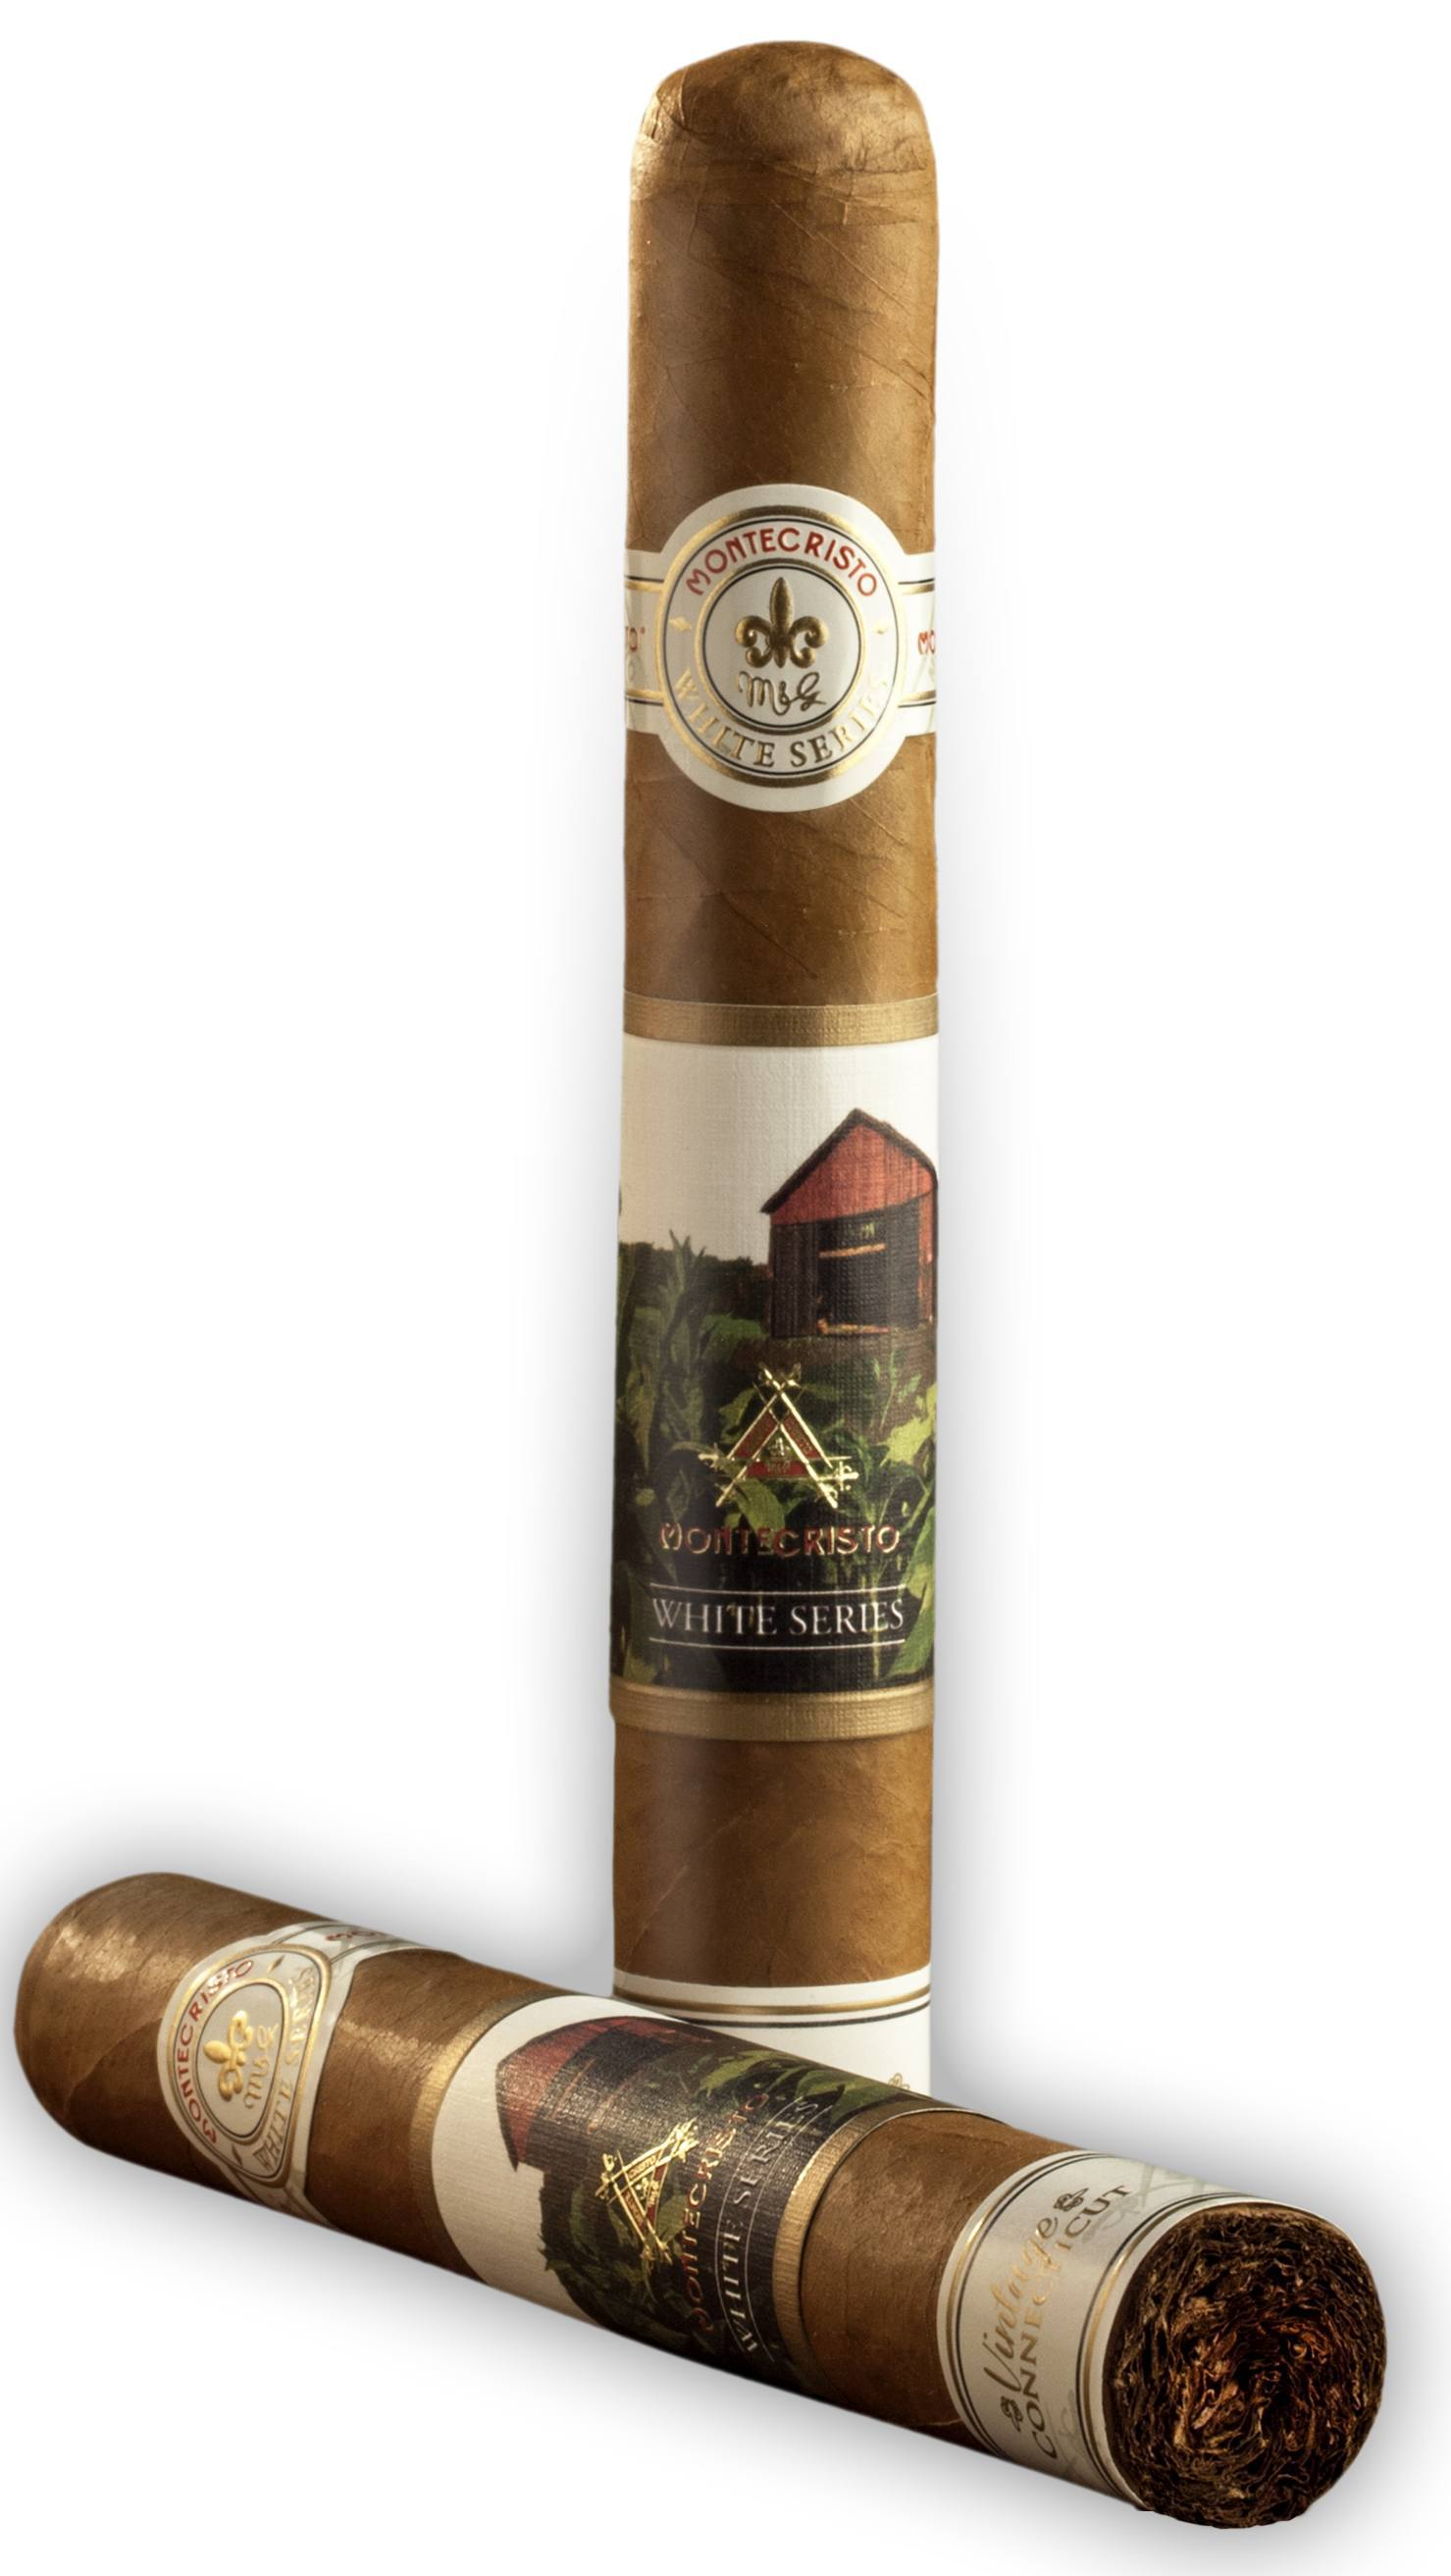 Montecristo Vintage Connecticut cigars